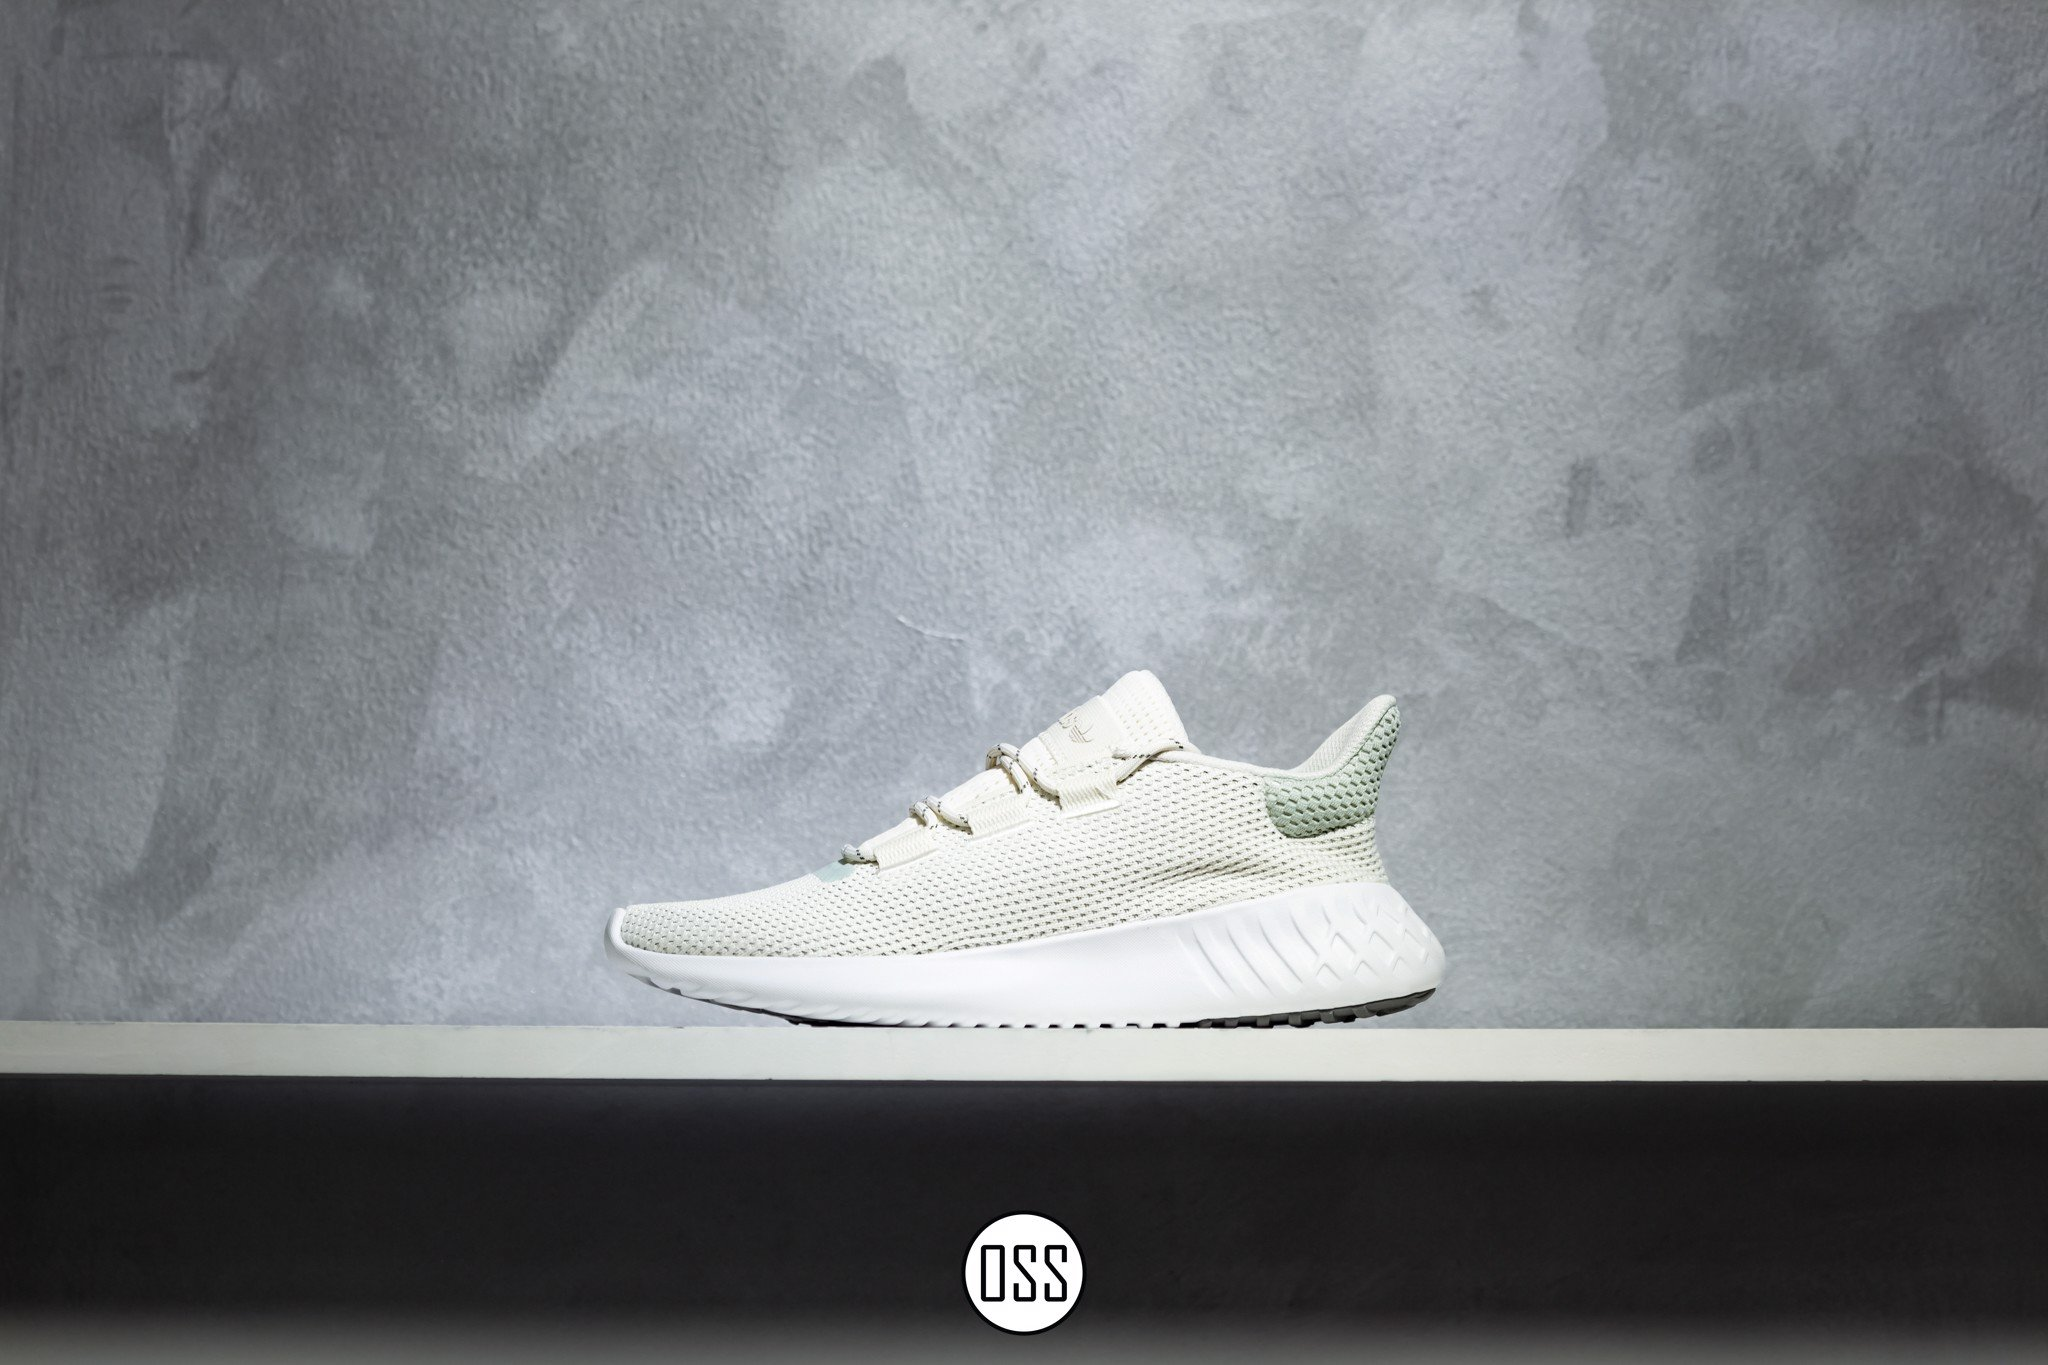 adidas Tubular Dusk 'Chalk White/Ash Green'